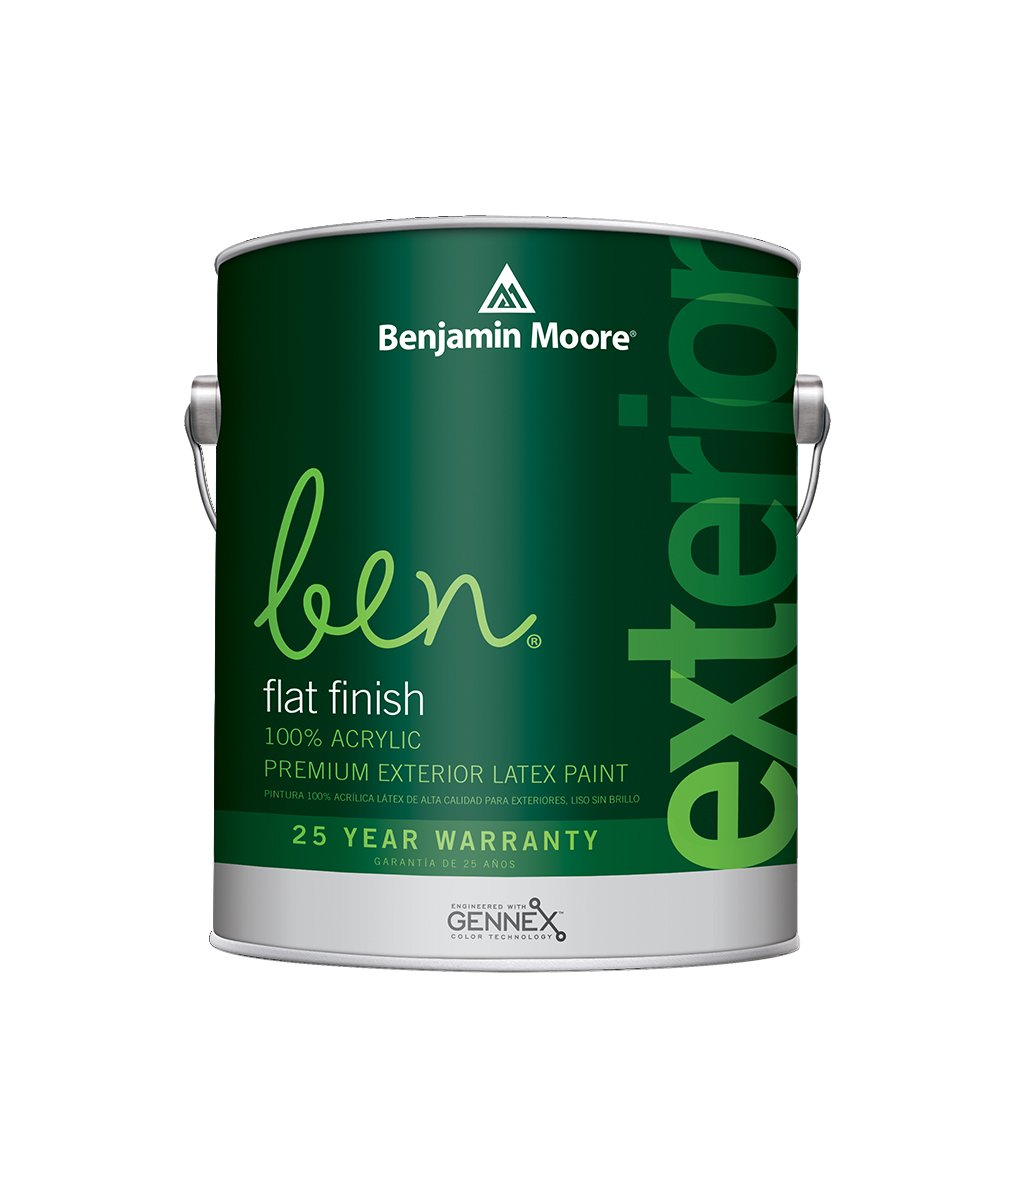 Benjamin Moore Ben Flat Exterior Paint available at Clement's Paint